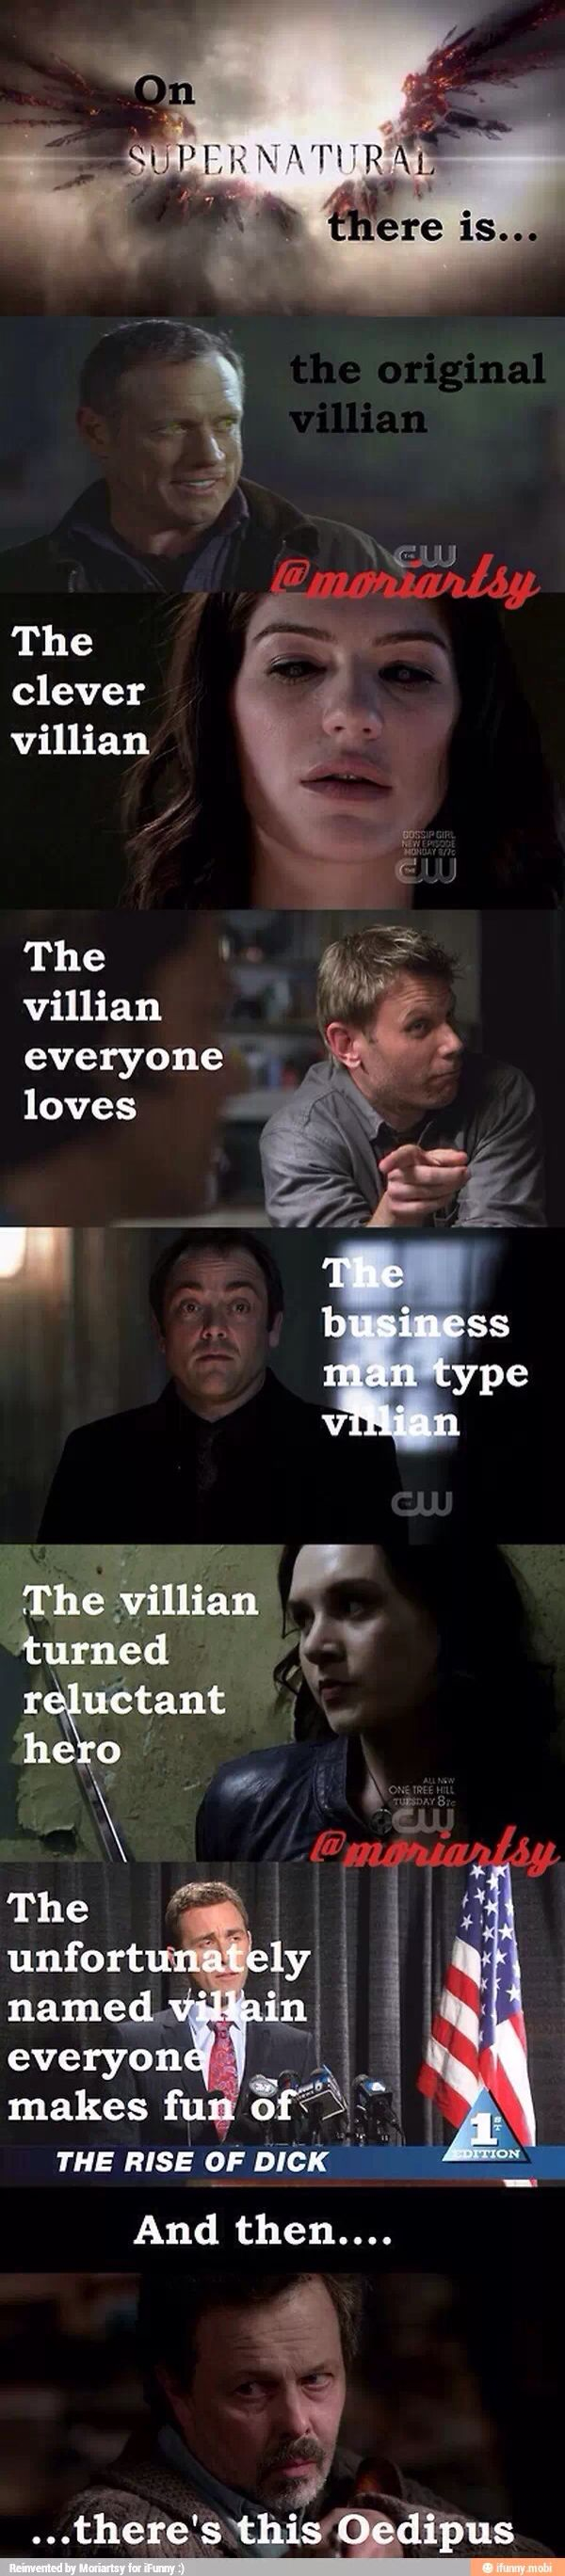 Only Supernatural has THIS MANY awesome/memorable villains. I mean really- what other show even comes close? :D